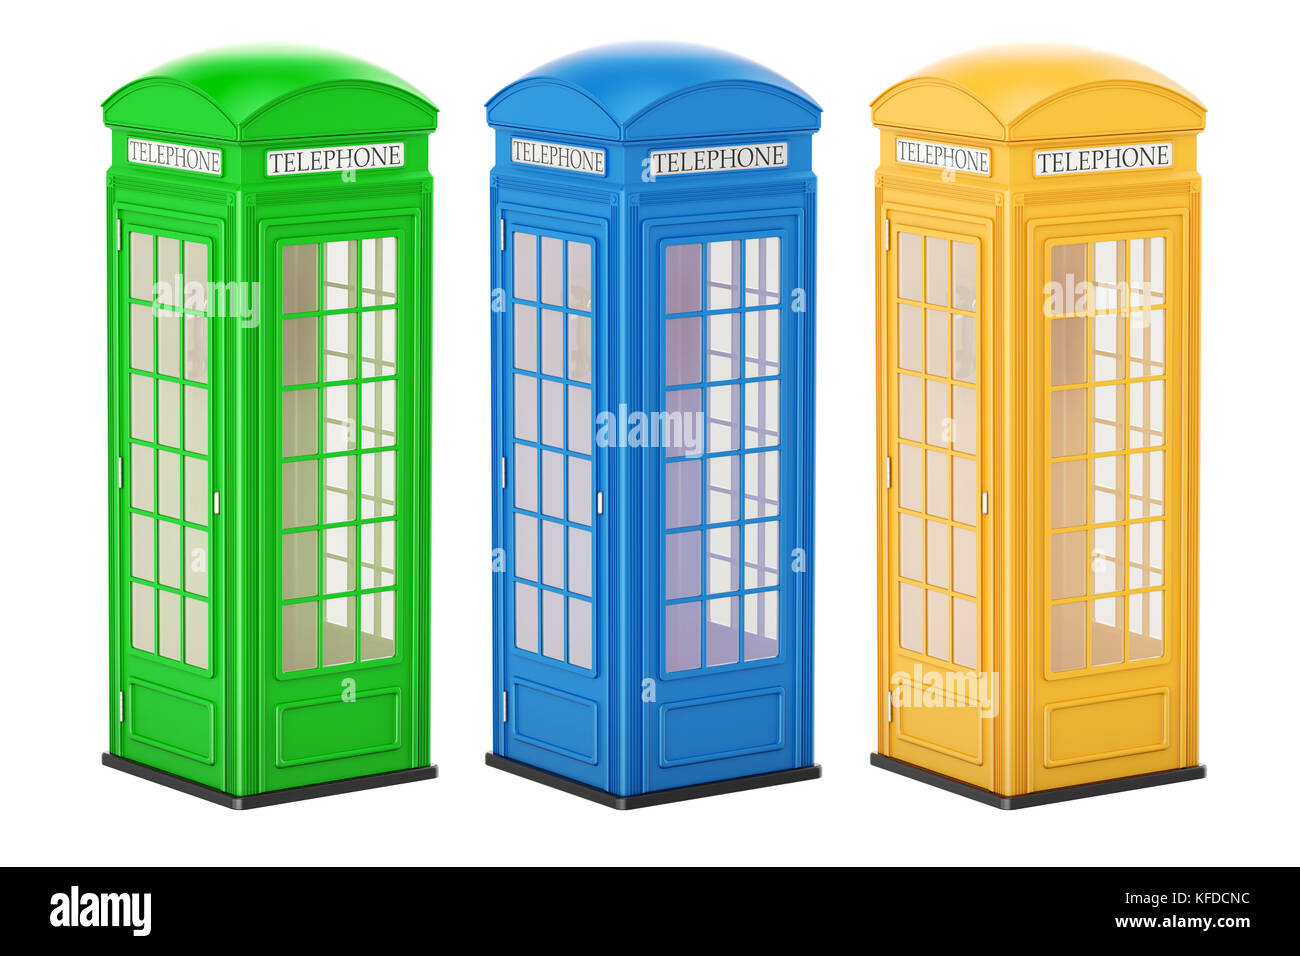 Set of colored telephone boxes, 3D rendering isolated on white background - Stock Image